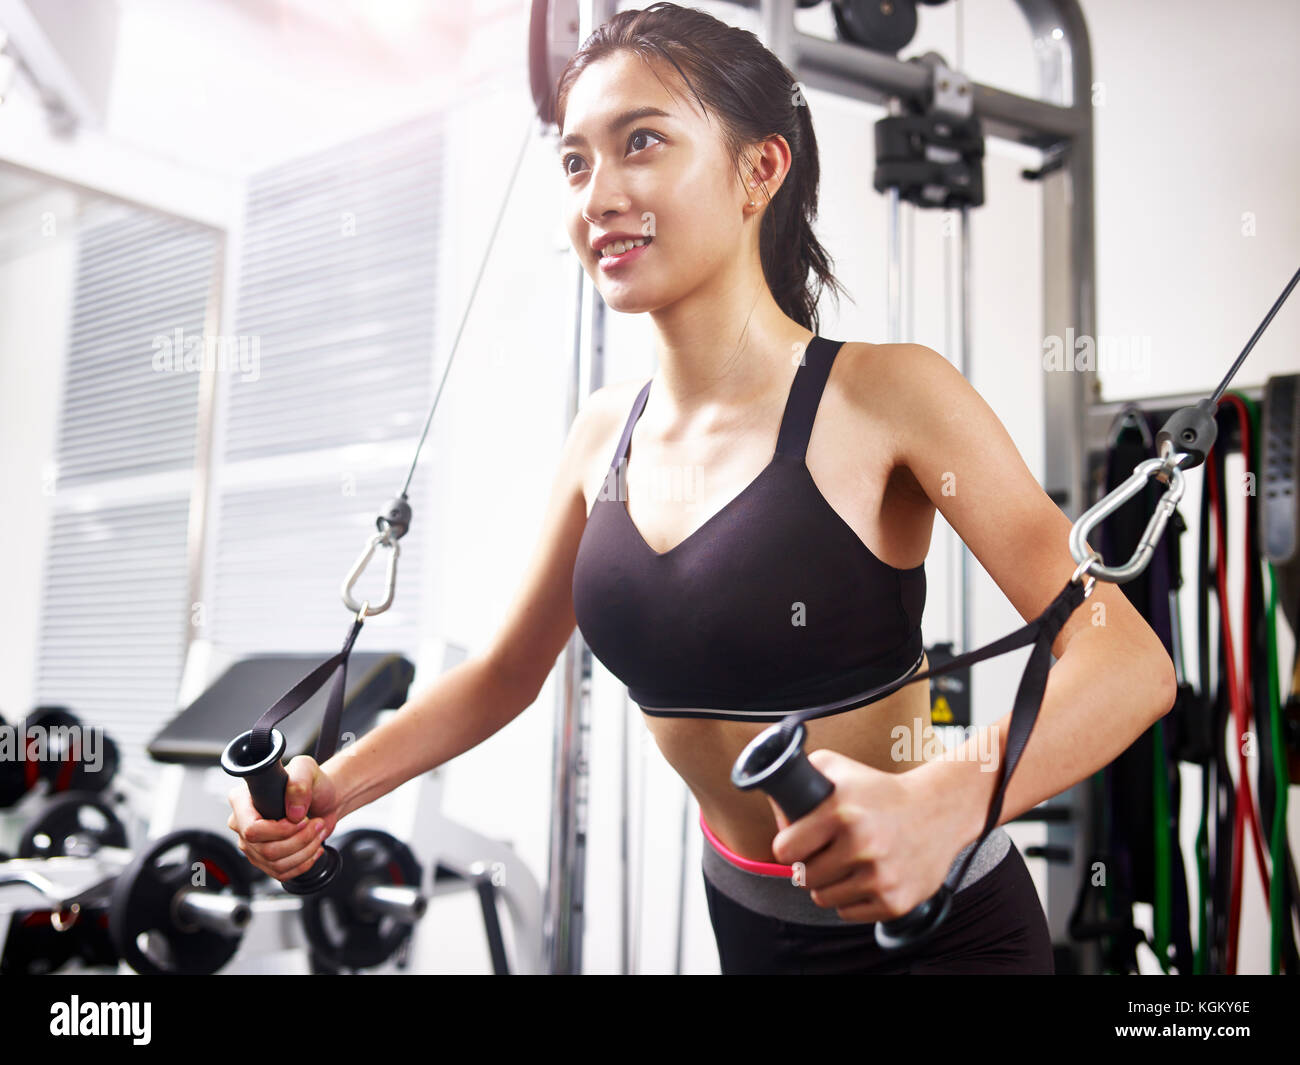 young asian woman working out in gym using exercising equipment. - Stock Image